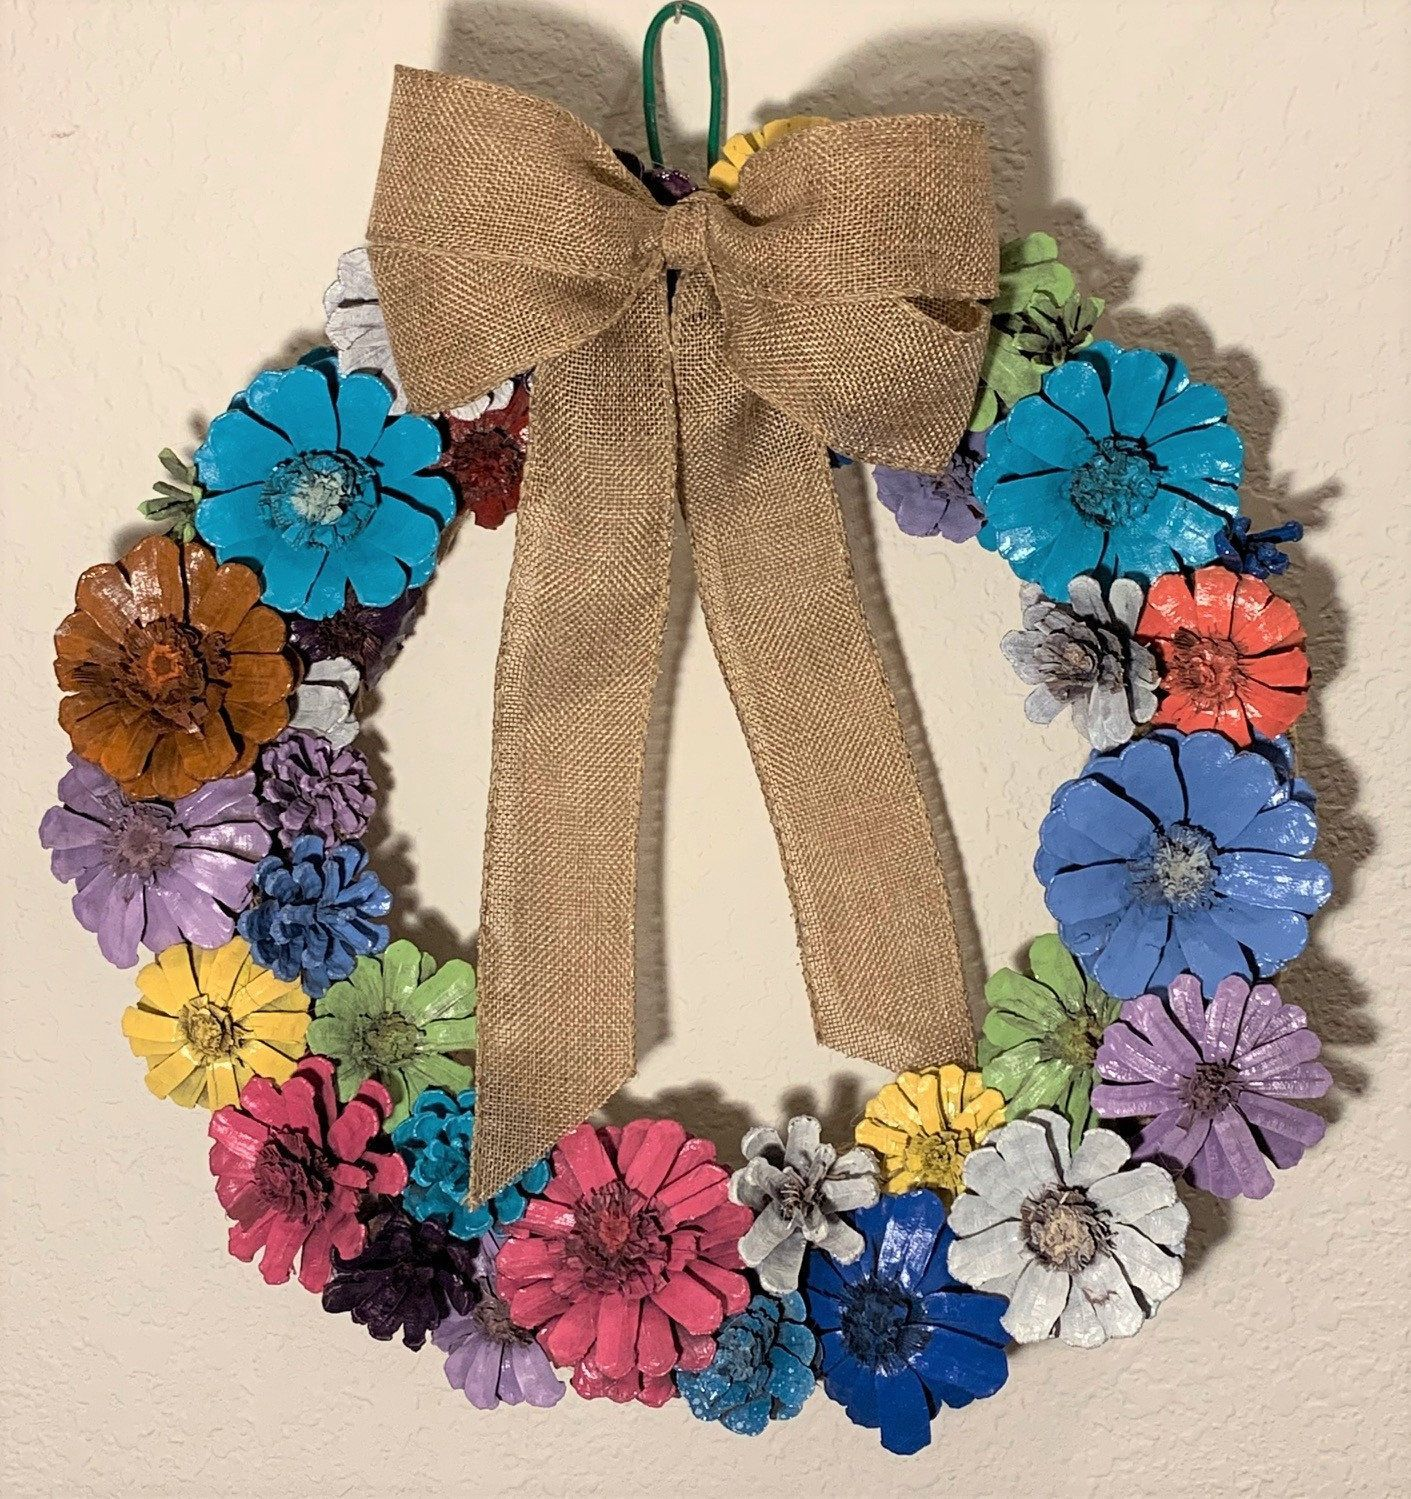 Pine Cone Flower Wreath/Door Hanger; Multiple Colors of Pine Cone Flowers with Huge Bow #pineconeflowers Pine Cone Flower Wreath/Door Hanger; Multiple Colors of Pine Cone Flowers with Huge Bow by LaciLouDesigns on Etsy #pineconeflowers